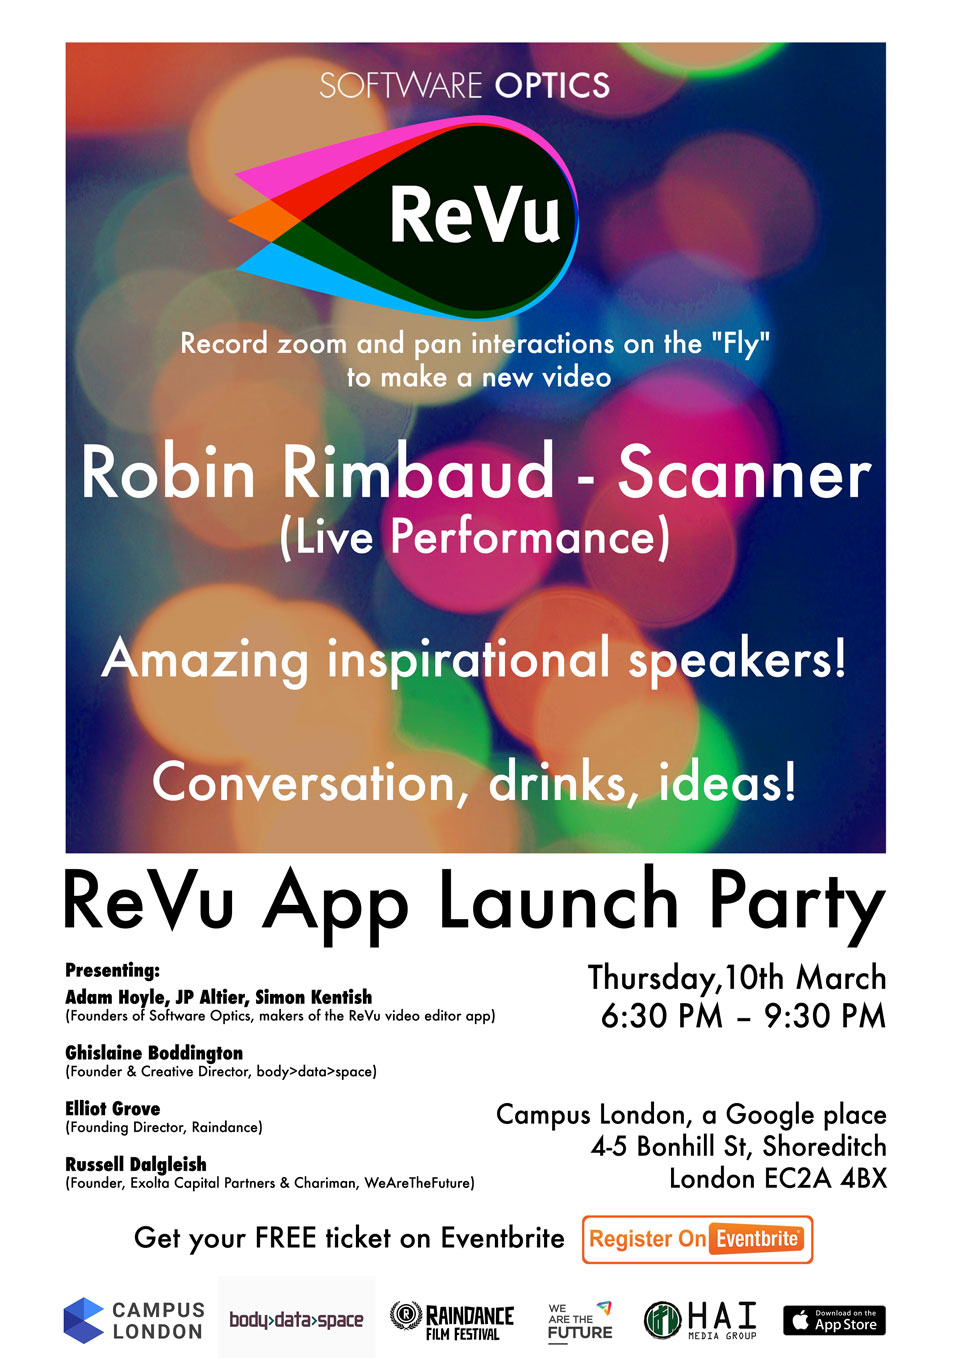 Event: ReVu App Launch Party, 10 March